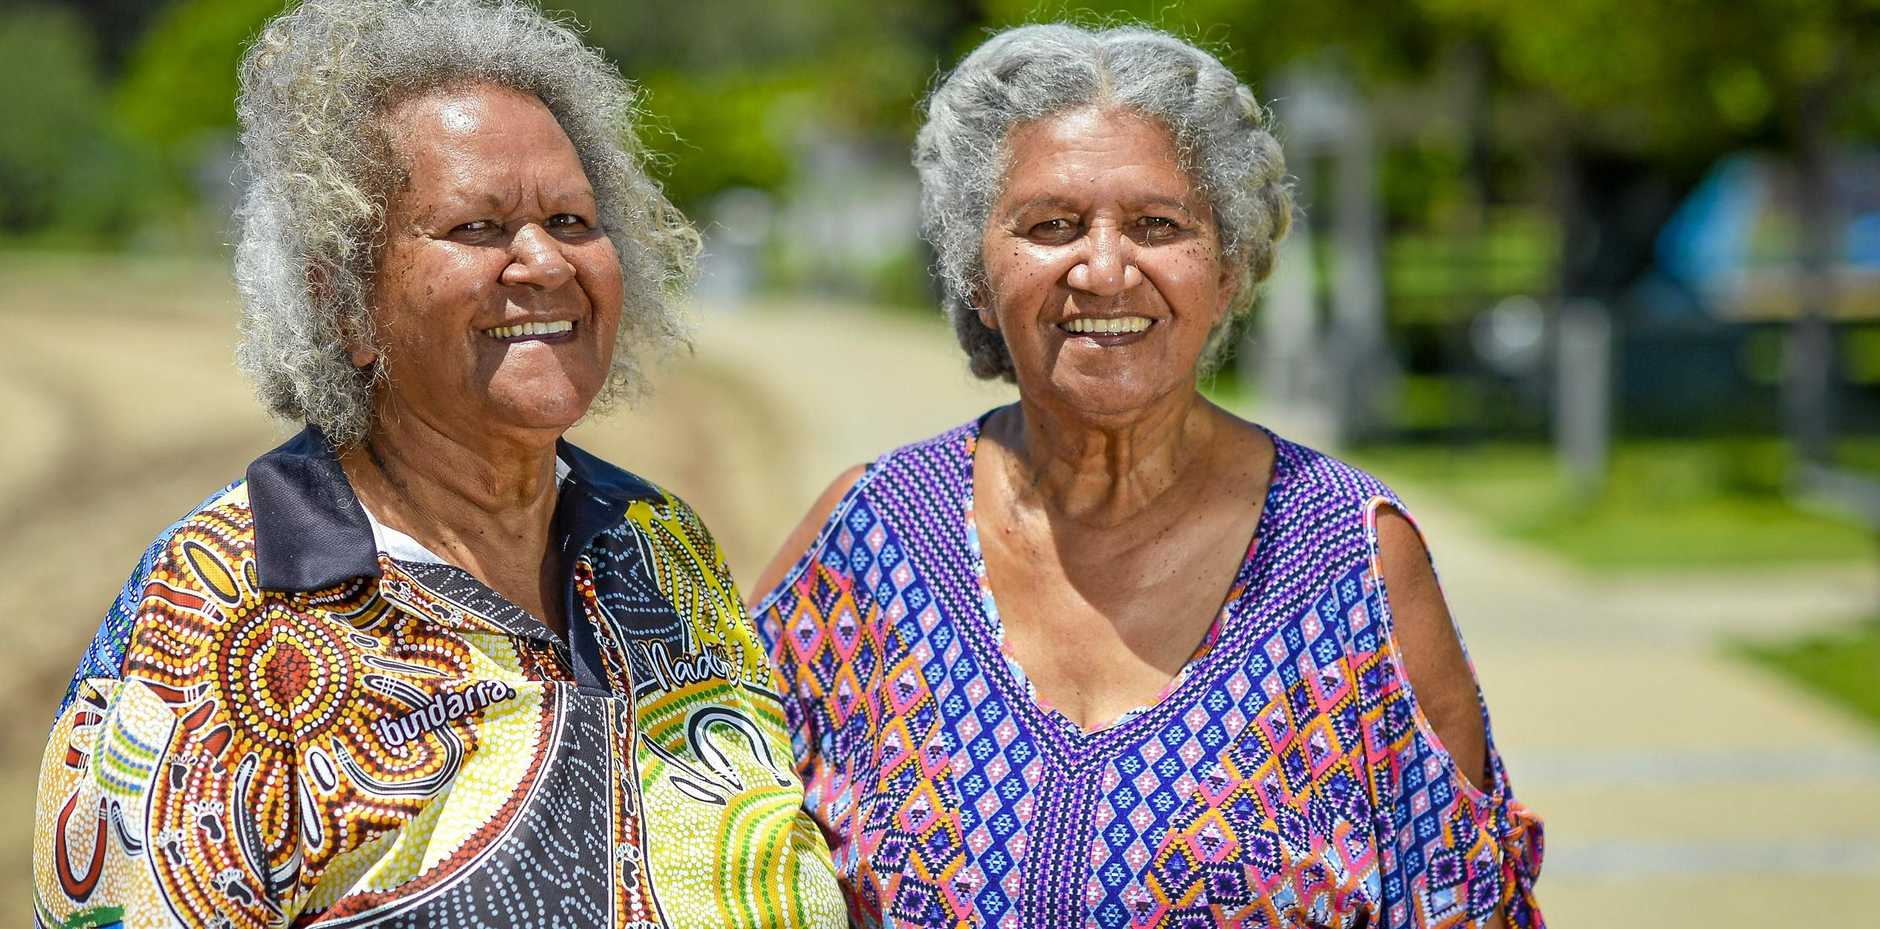 SISTERS IN ARMS: Retired teachers Neola Savage and Juliri Ingra says black and white people need to work together.